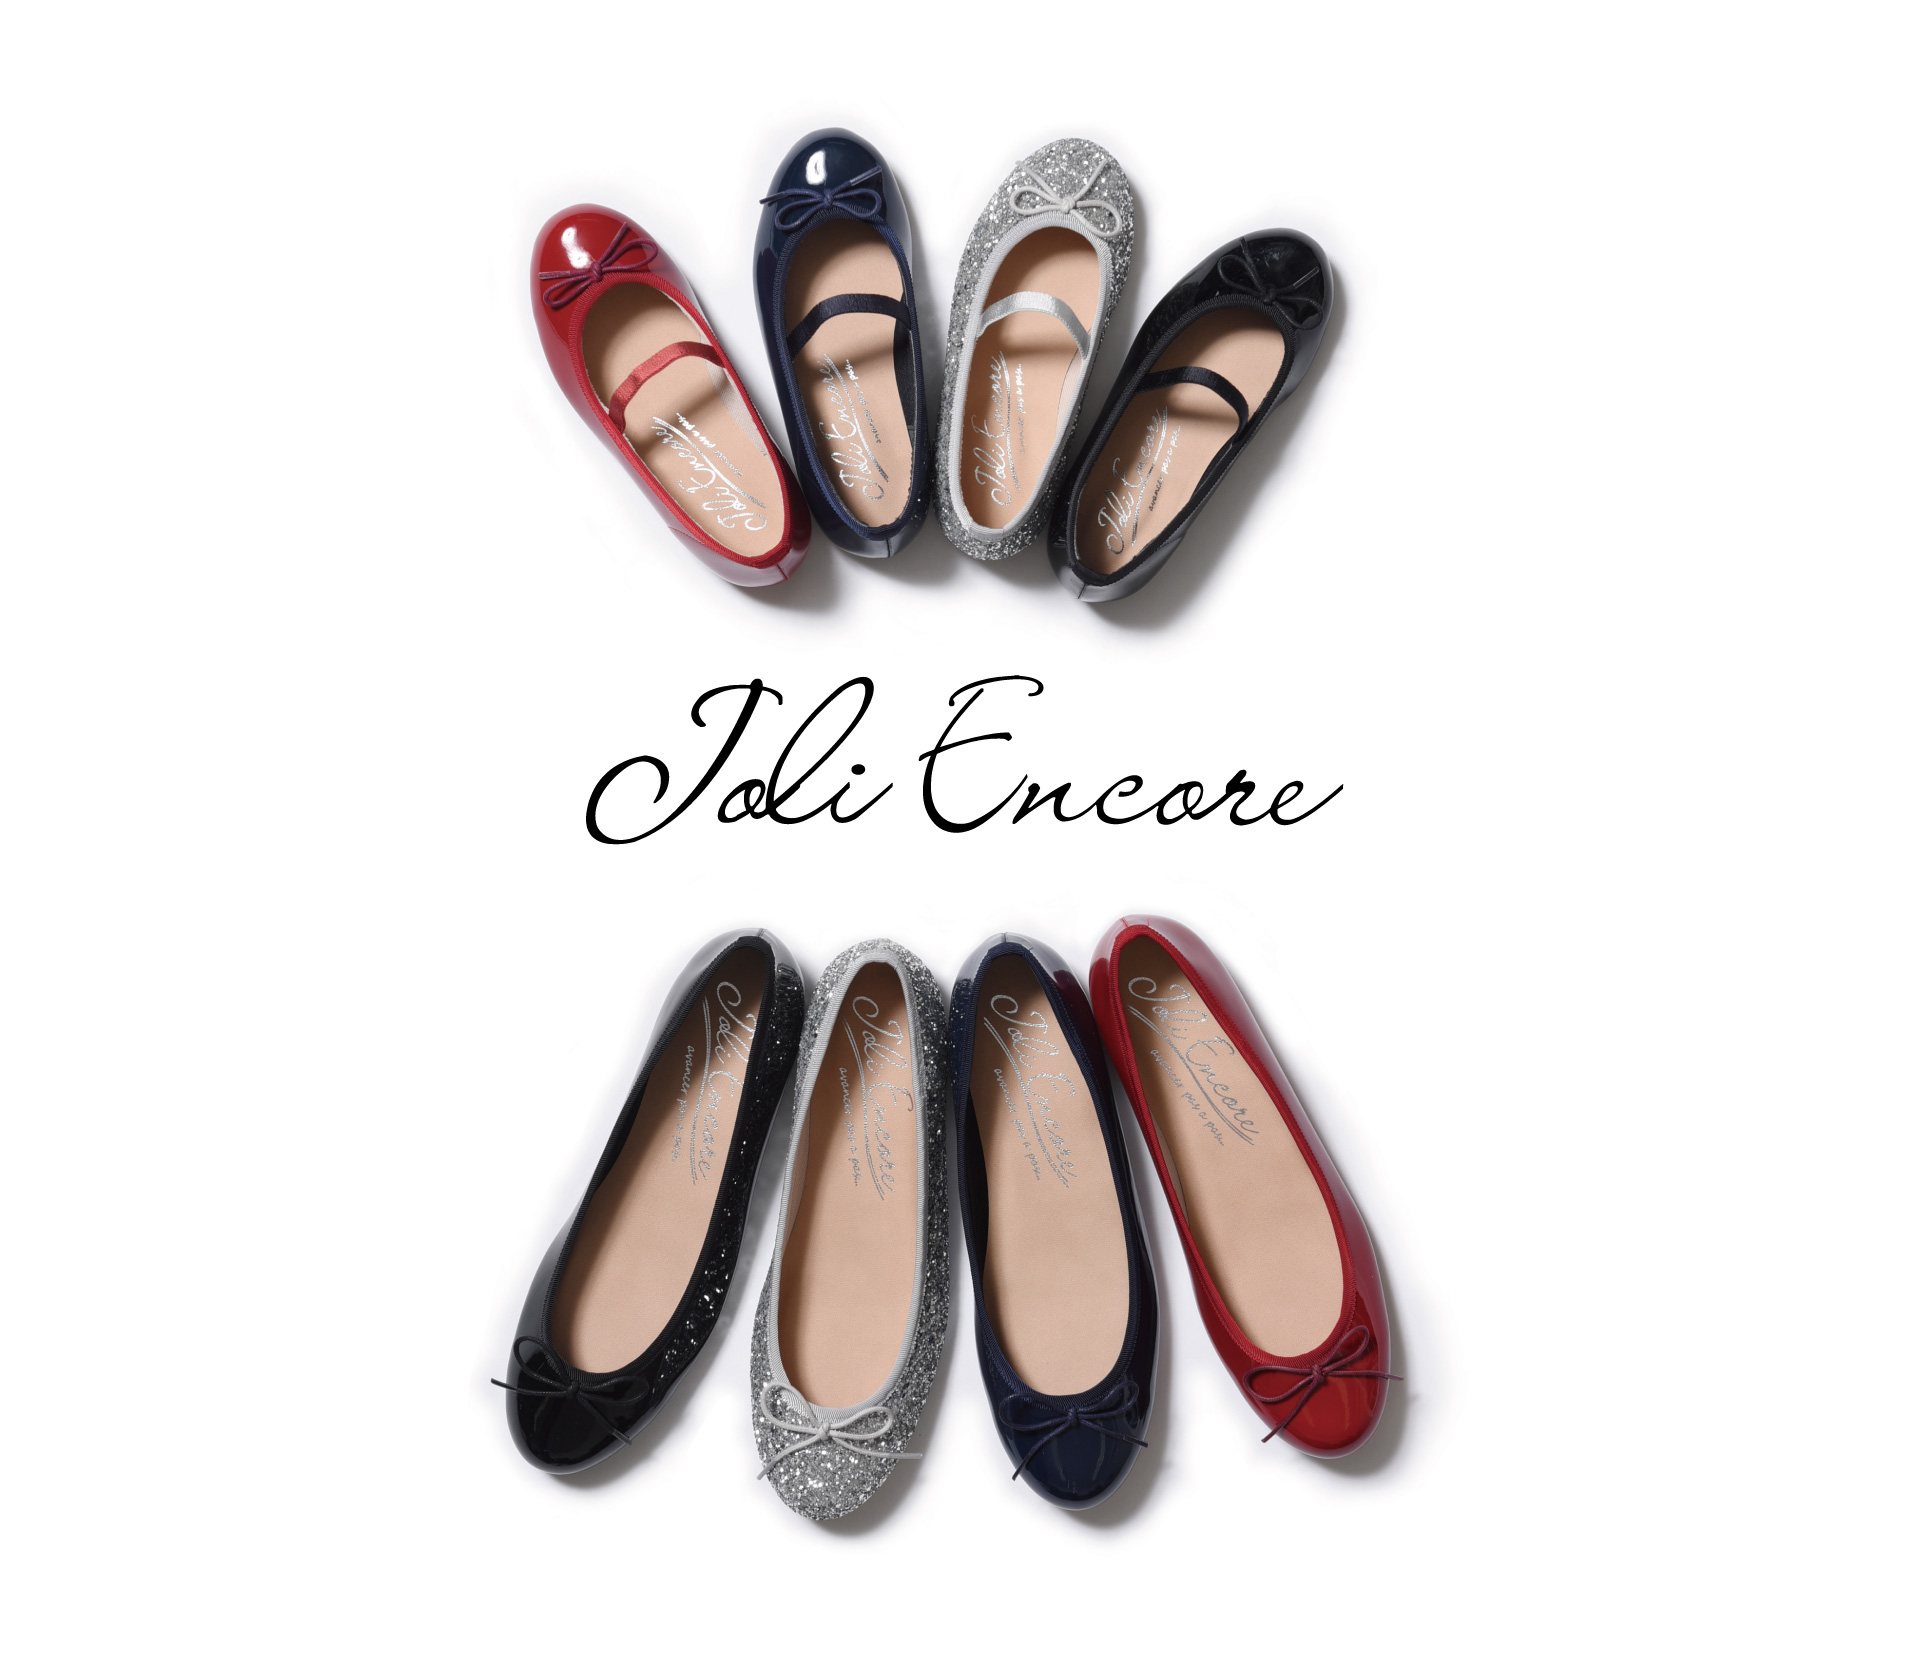 JOLI ENCORE BALLET SHOES